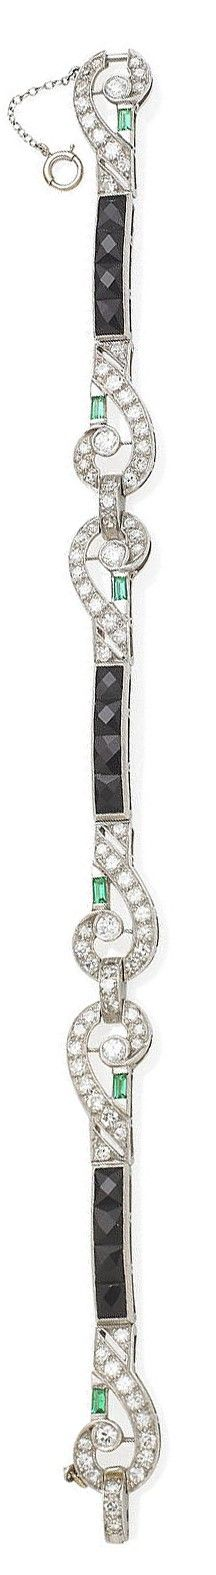 An art deco onyx and diamond bracelet, 1920s. Composed of three articulated sections, each centring upon a faceted onyx line between a pair of scrolling panels, millegrain-set throughout with old brilliant-cut and single-cut diamonds, with baguette-cut green paste accents, diamonds approximately 3.00 carats total, length 18.5cm #tiffany tiffany gold bangle price